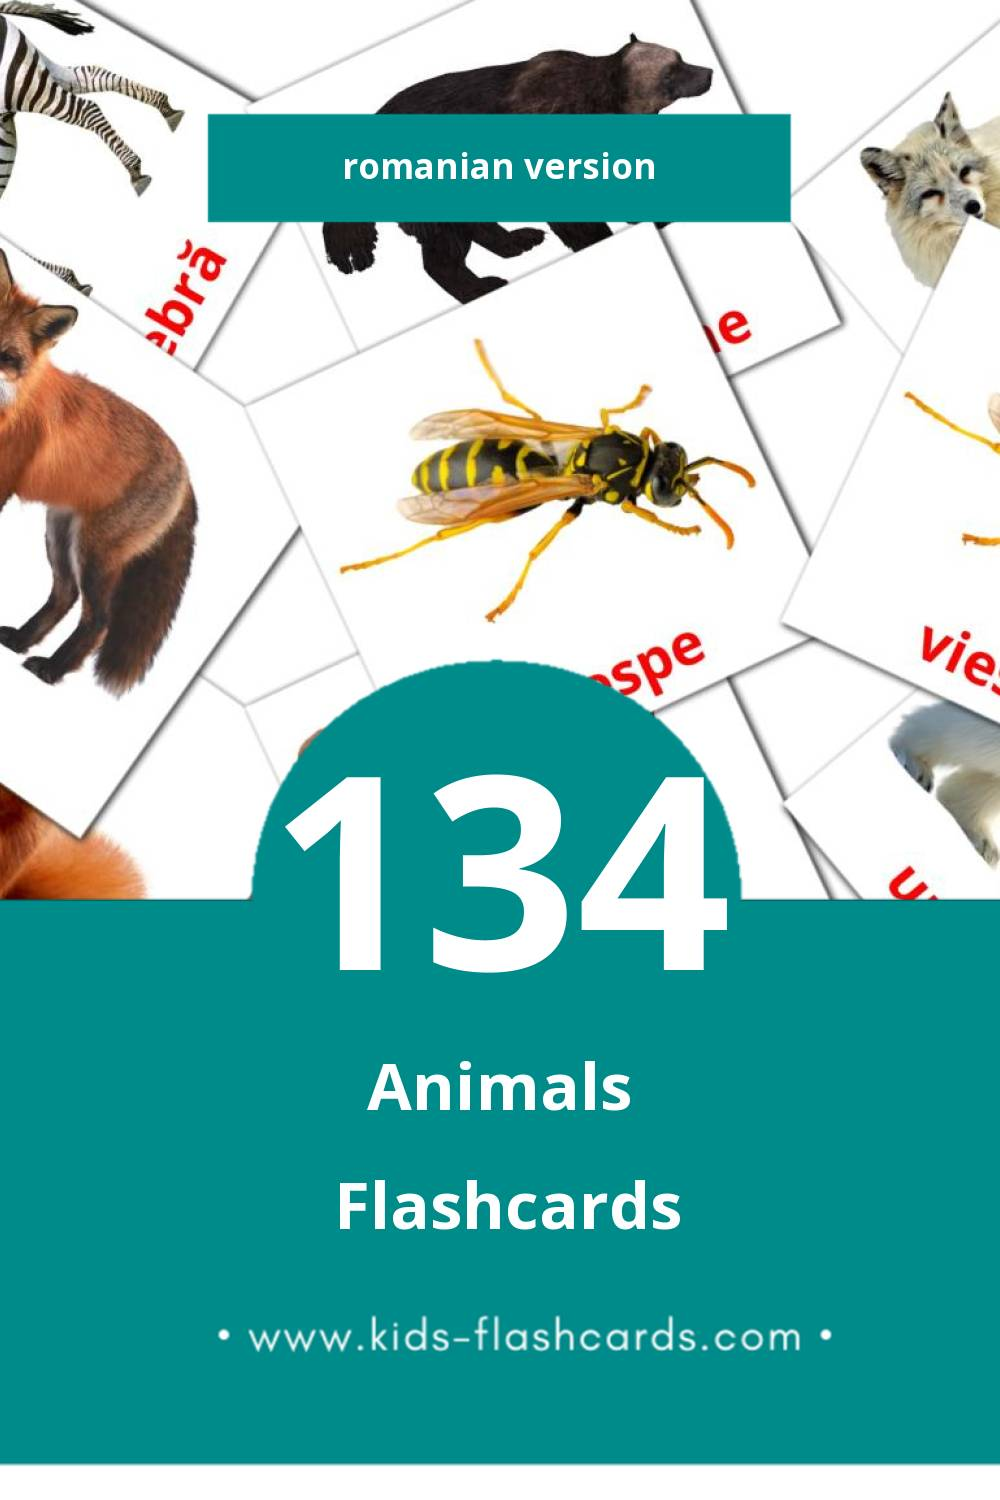 Visual Animale Flashcards for Toddlers (128 cards in Romanian)